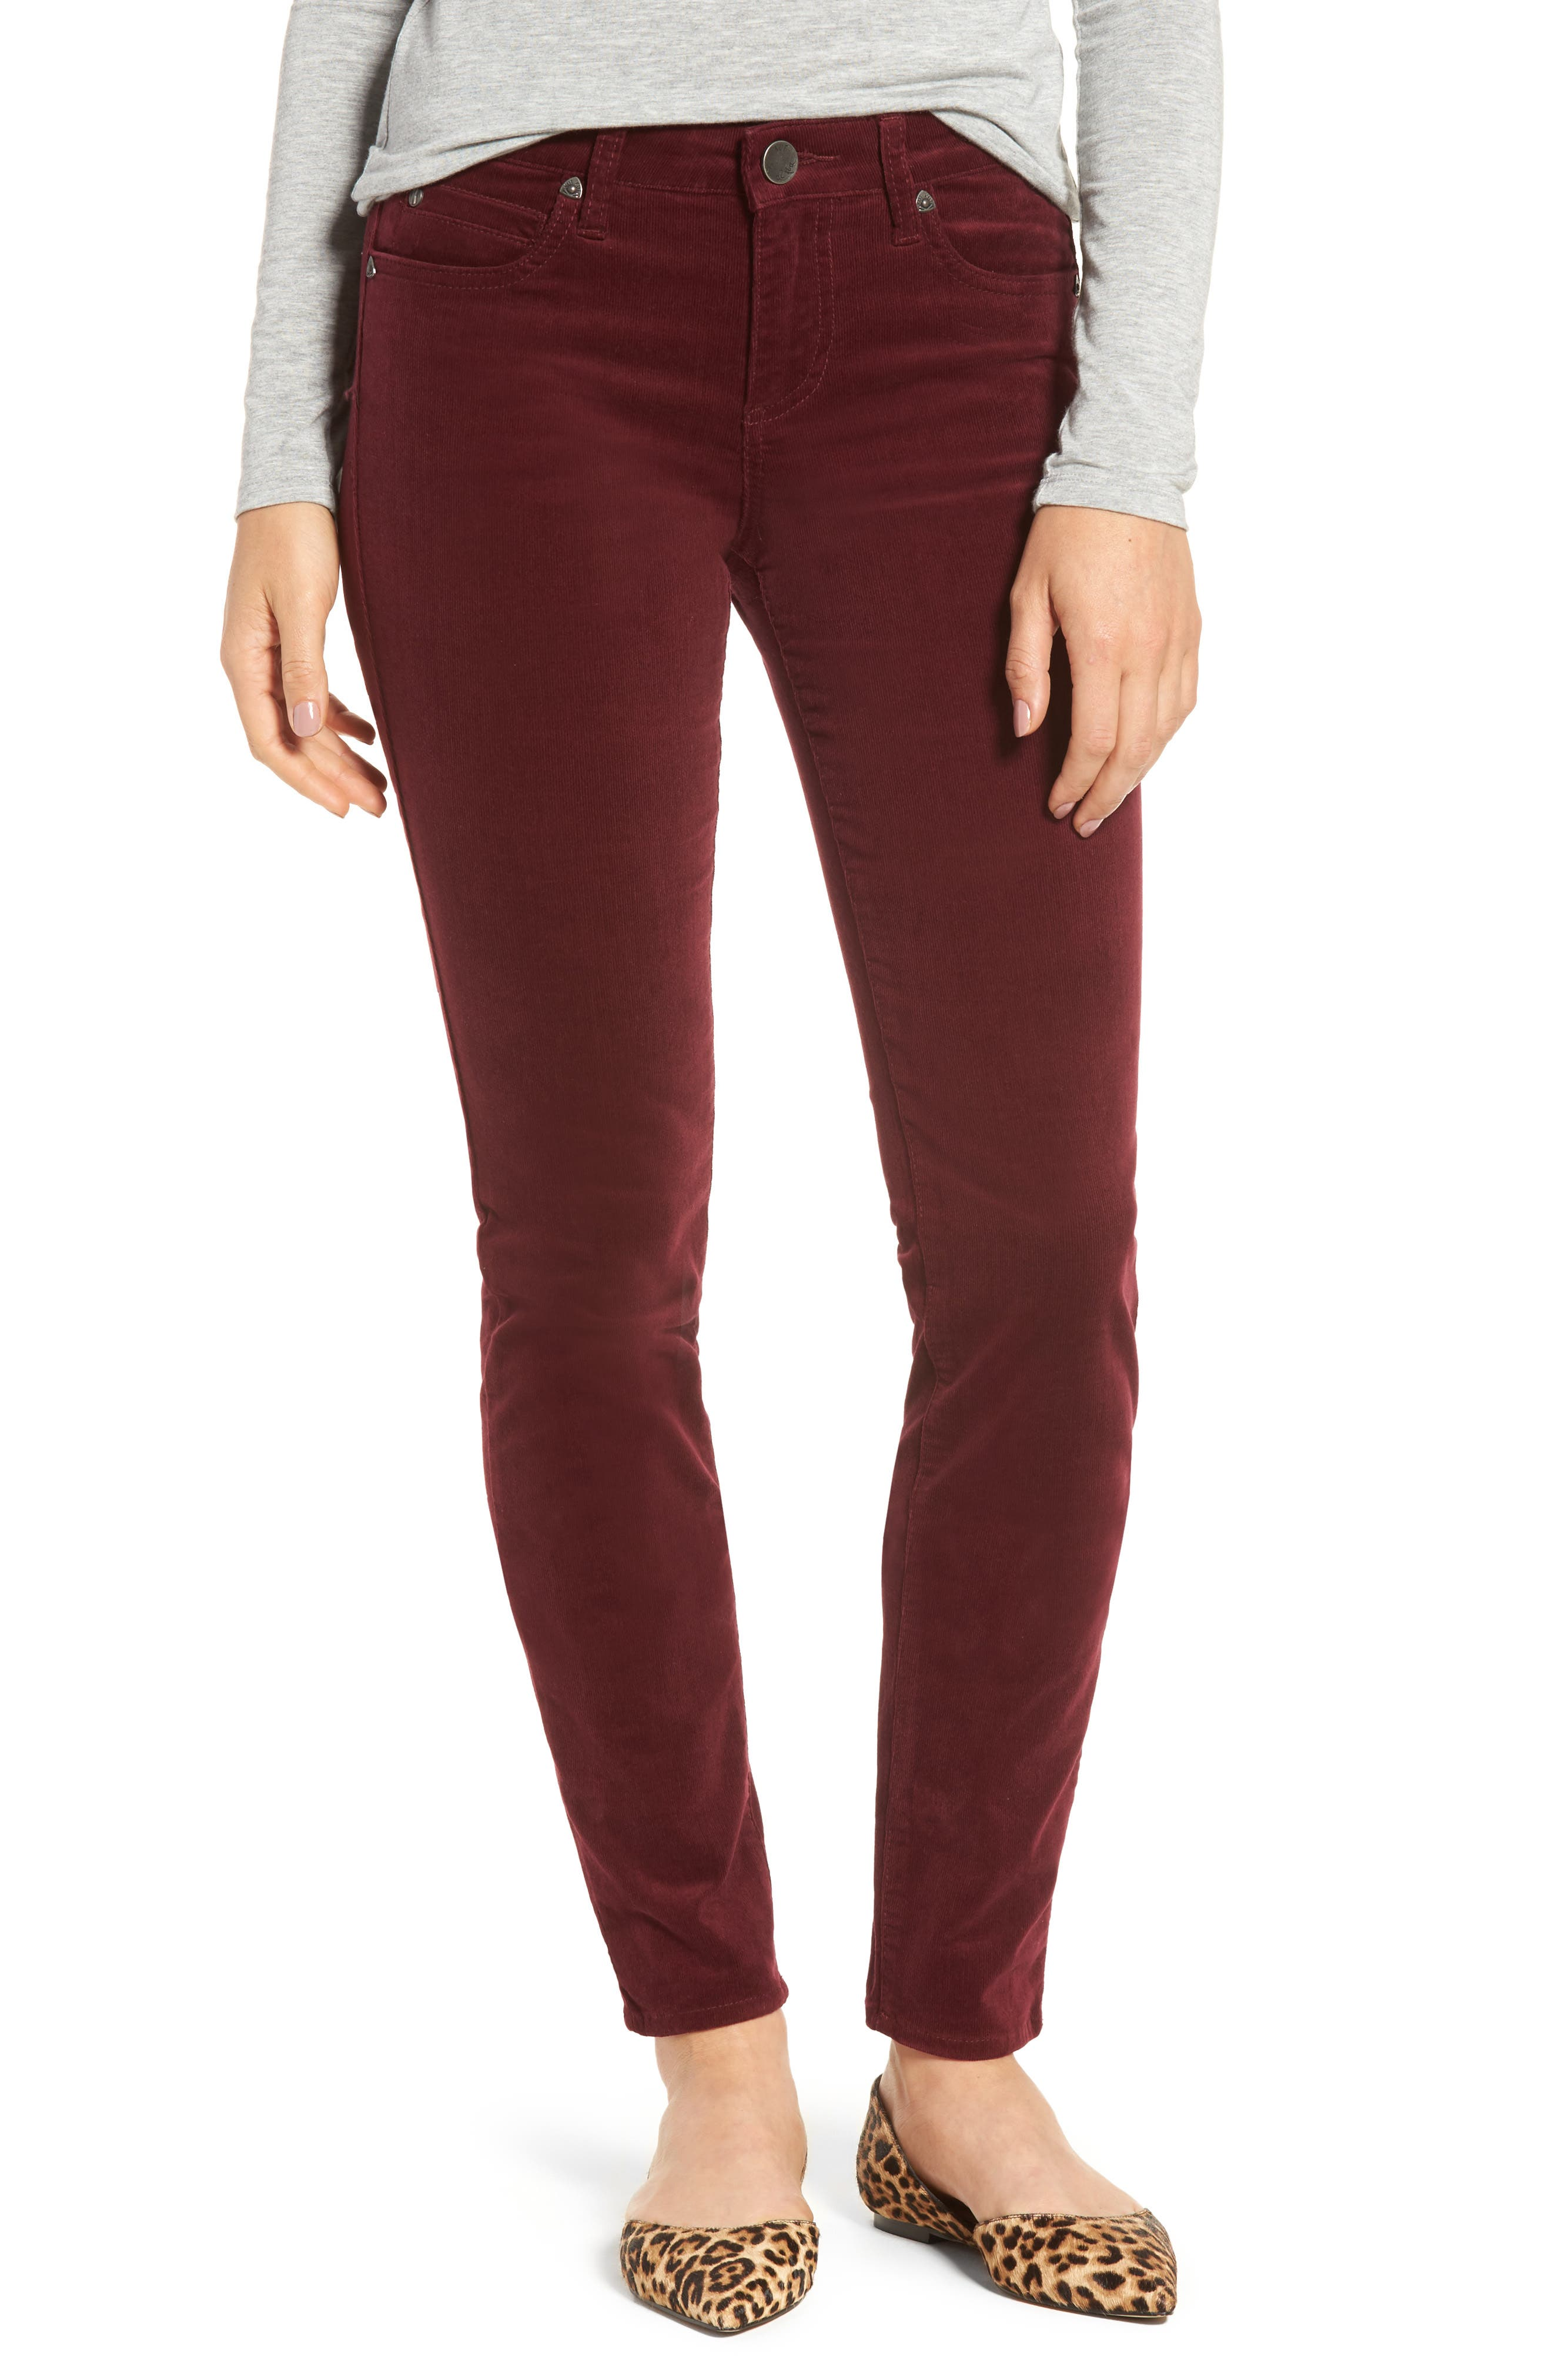 Burgundy Pants For Women JR4vIKtm